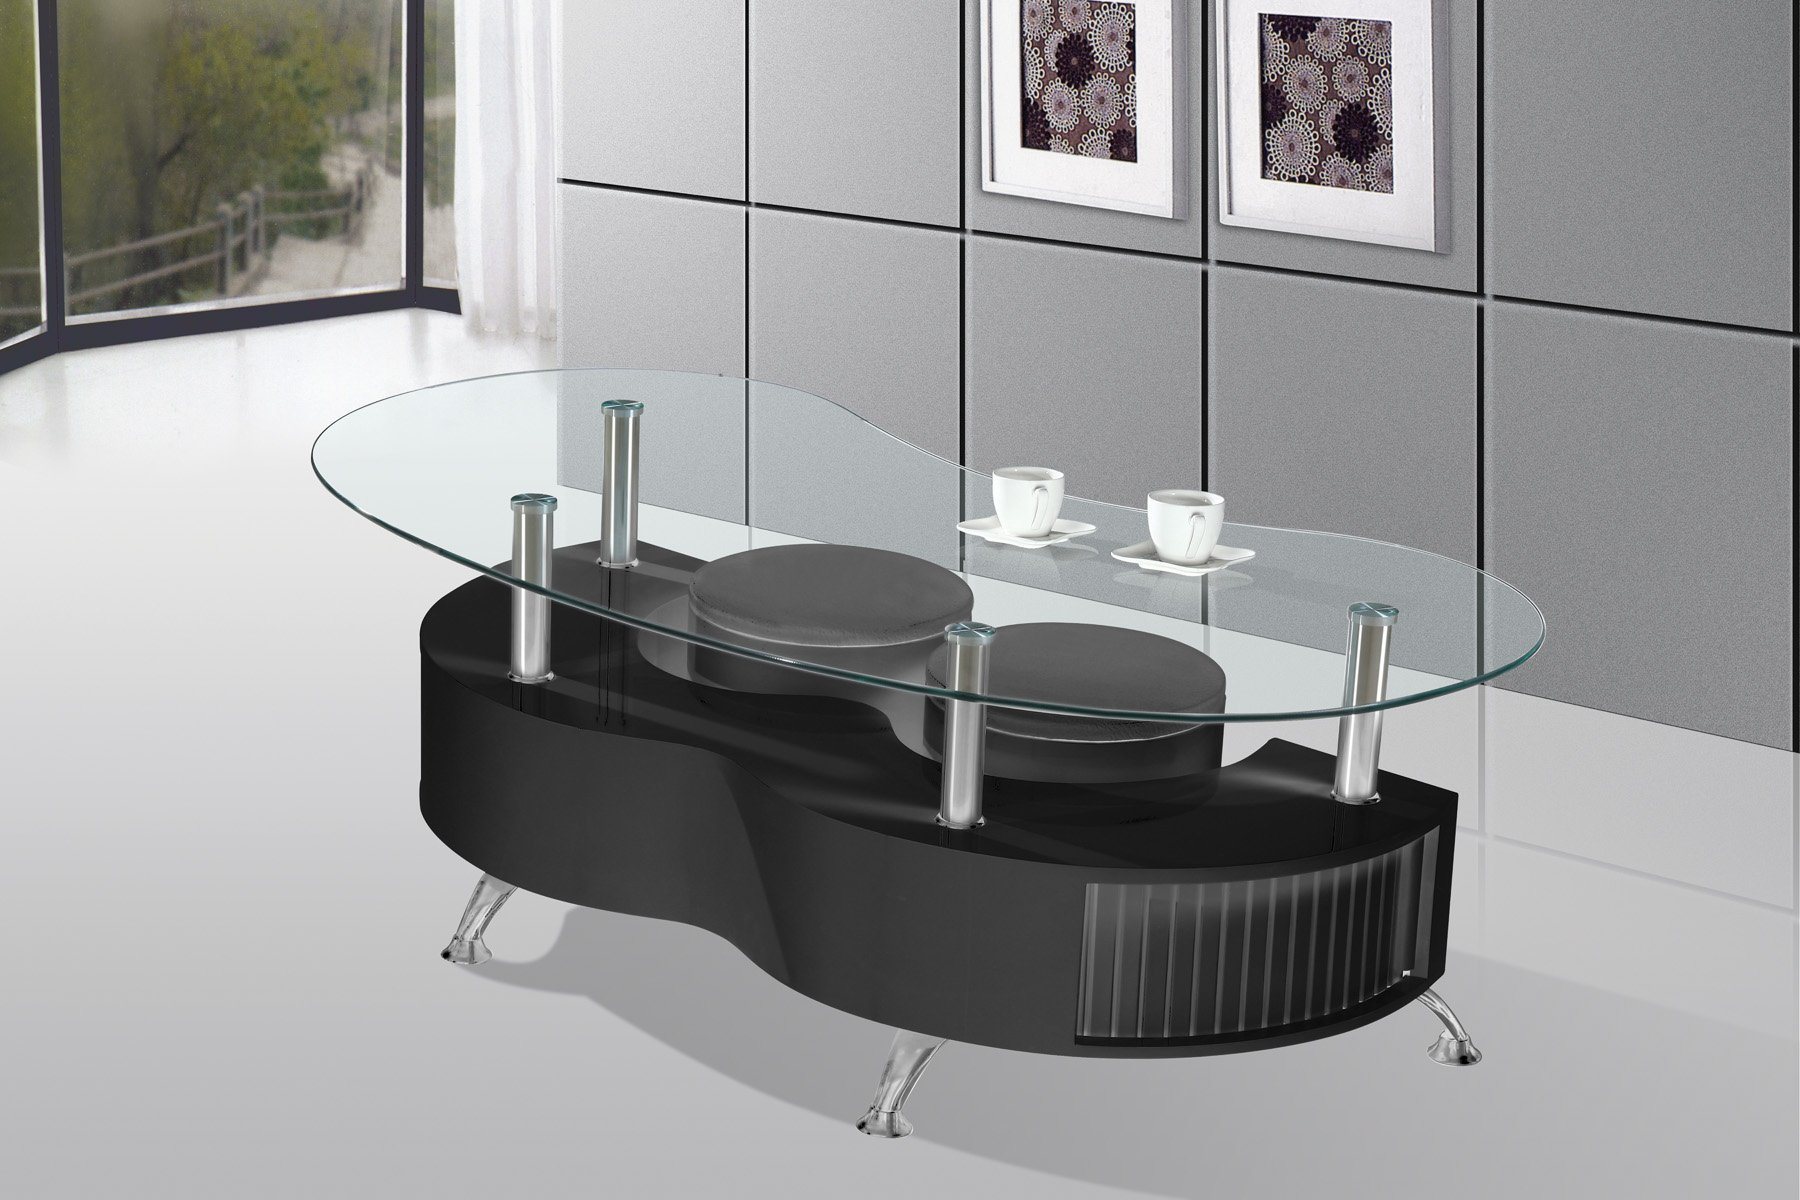 Best Quality Furniture CT21 Mordern Glass Black Coffee Table W/Two Stools by Best Quality